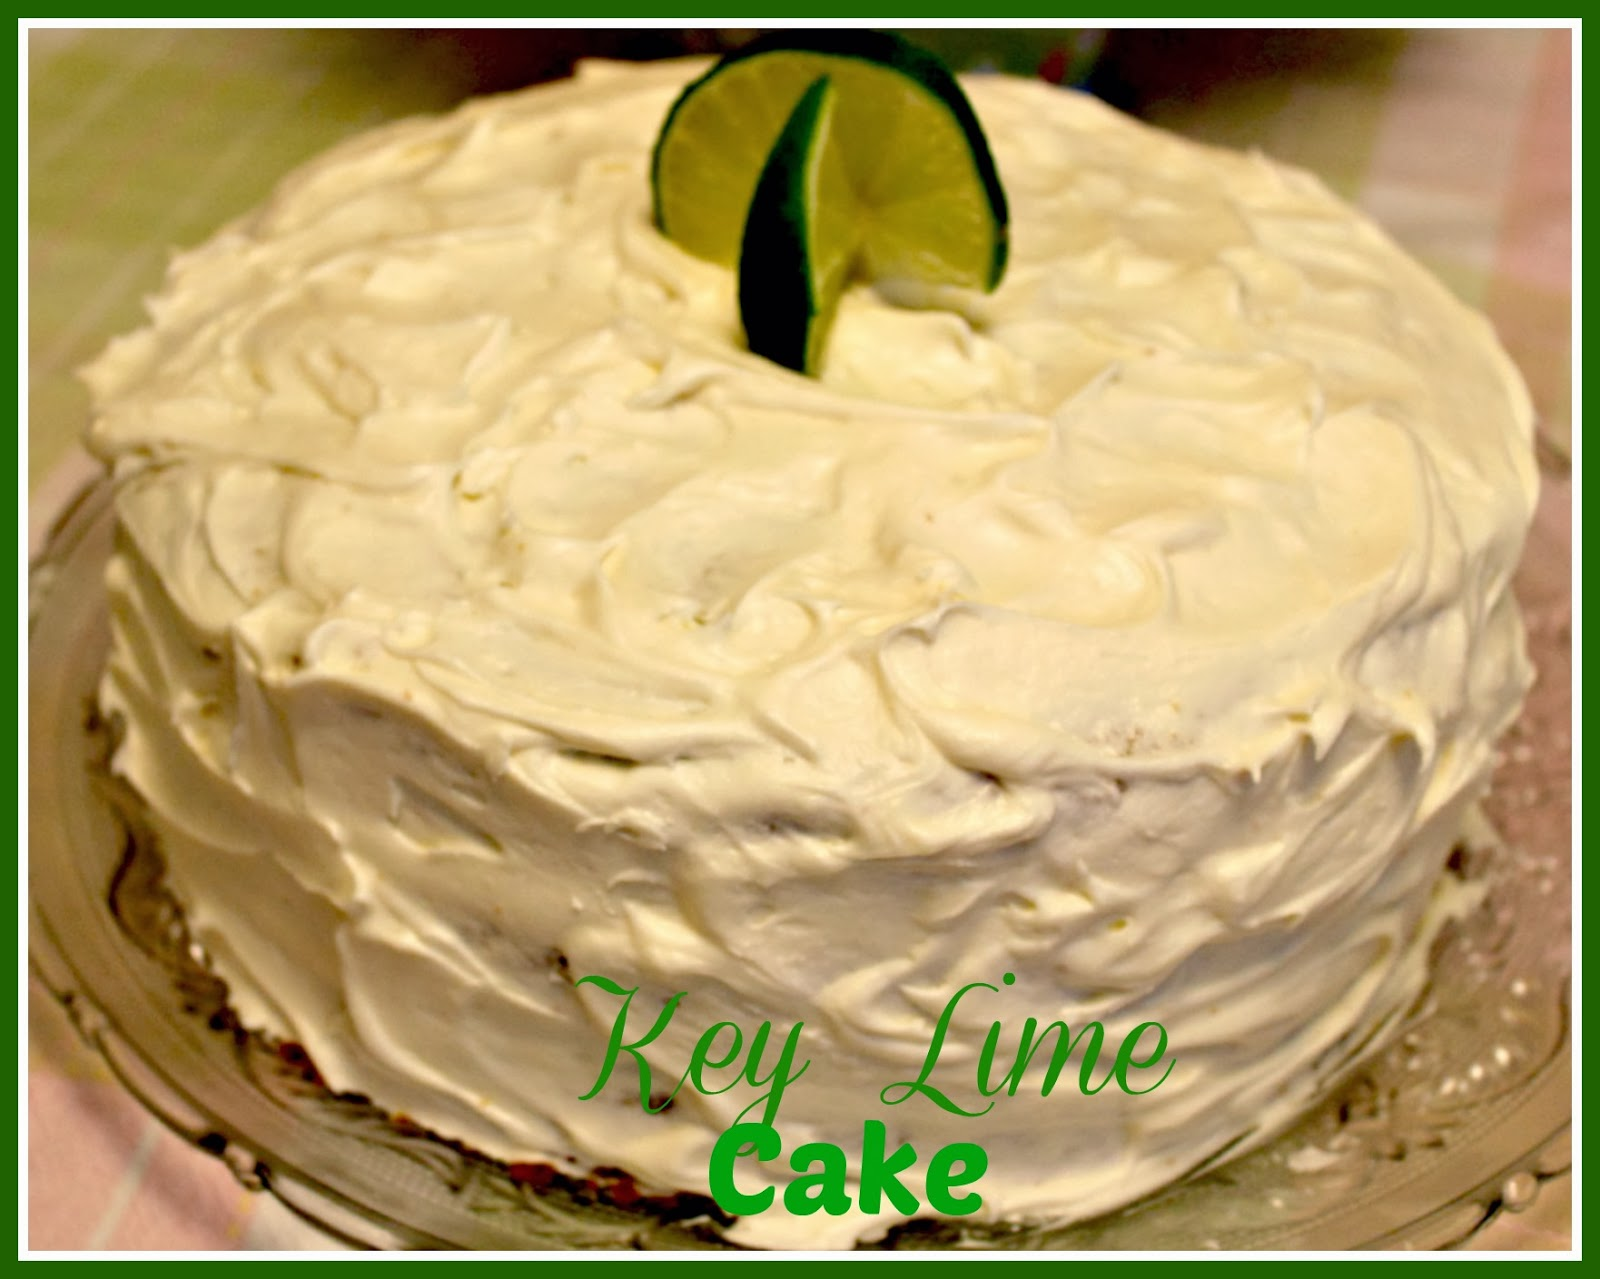 Frost the entire cake and if you want to garnish use some lime slices ...